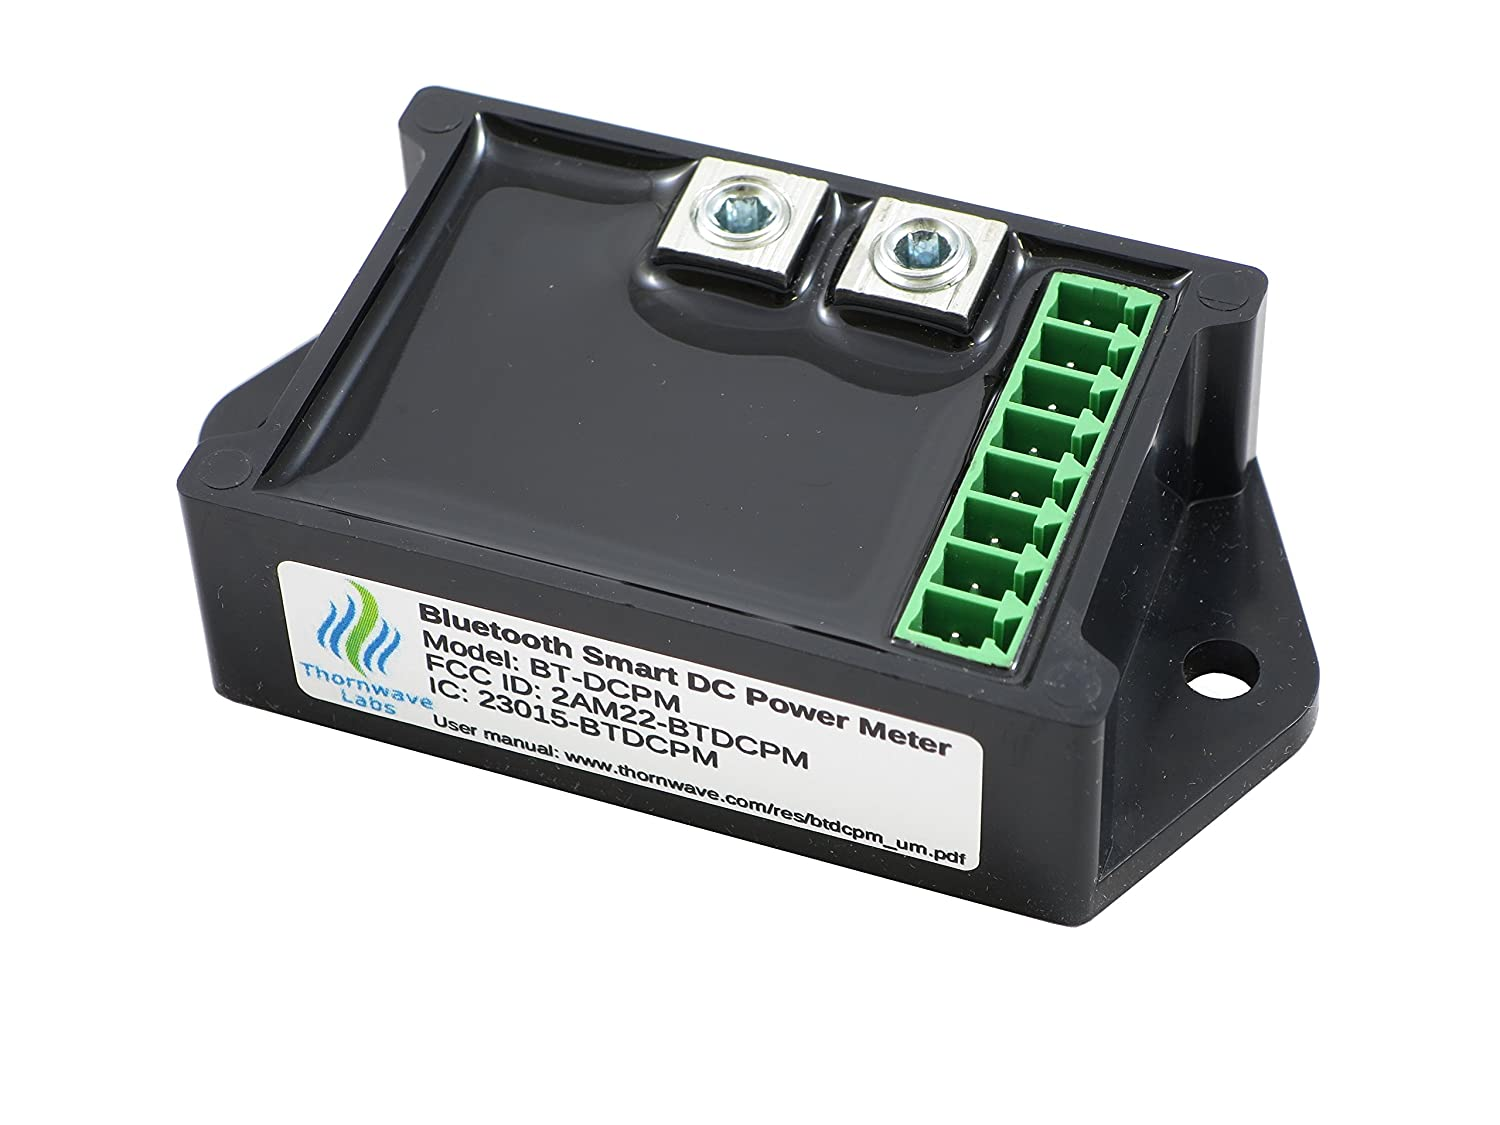 Bluetooth Battery Monitor, DC Power Meter Thornwave Labs Inc